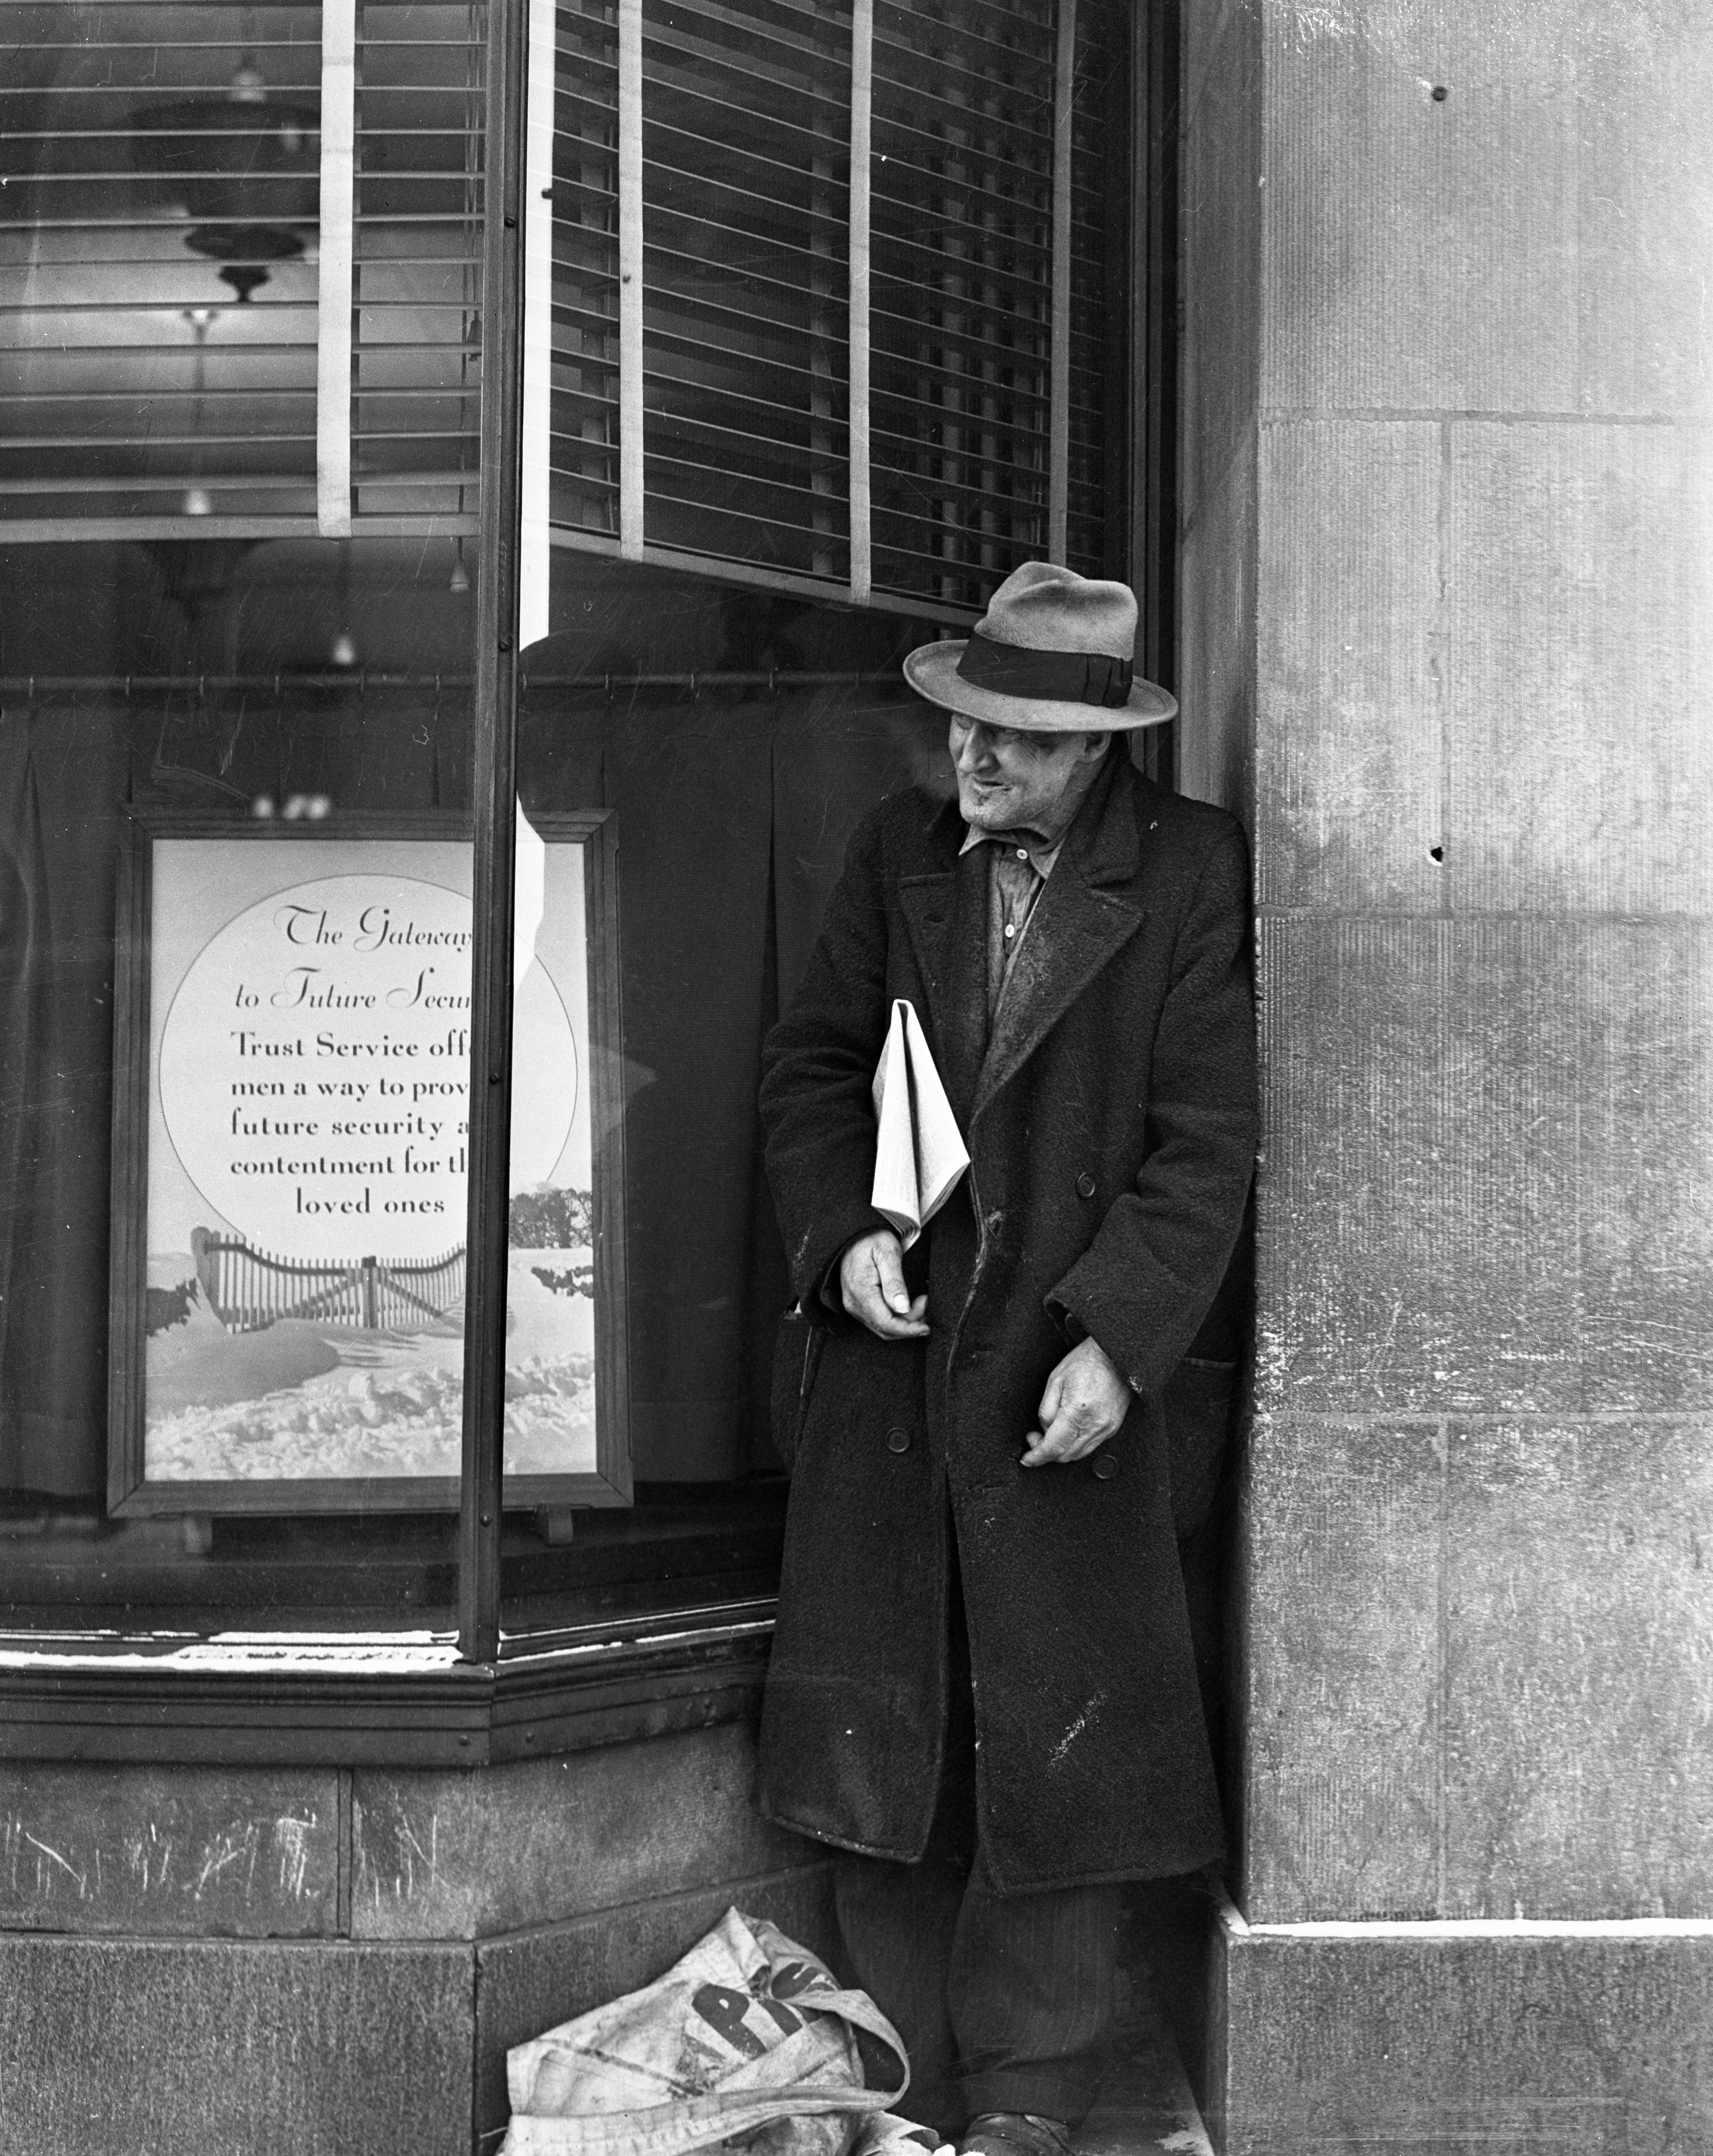 Newsman in front of Ann Arbor Trust, 1938 image